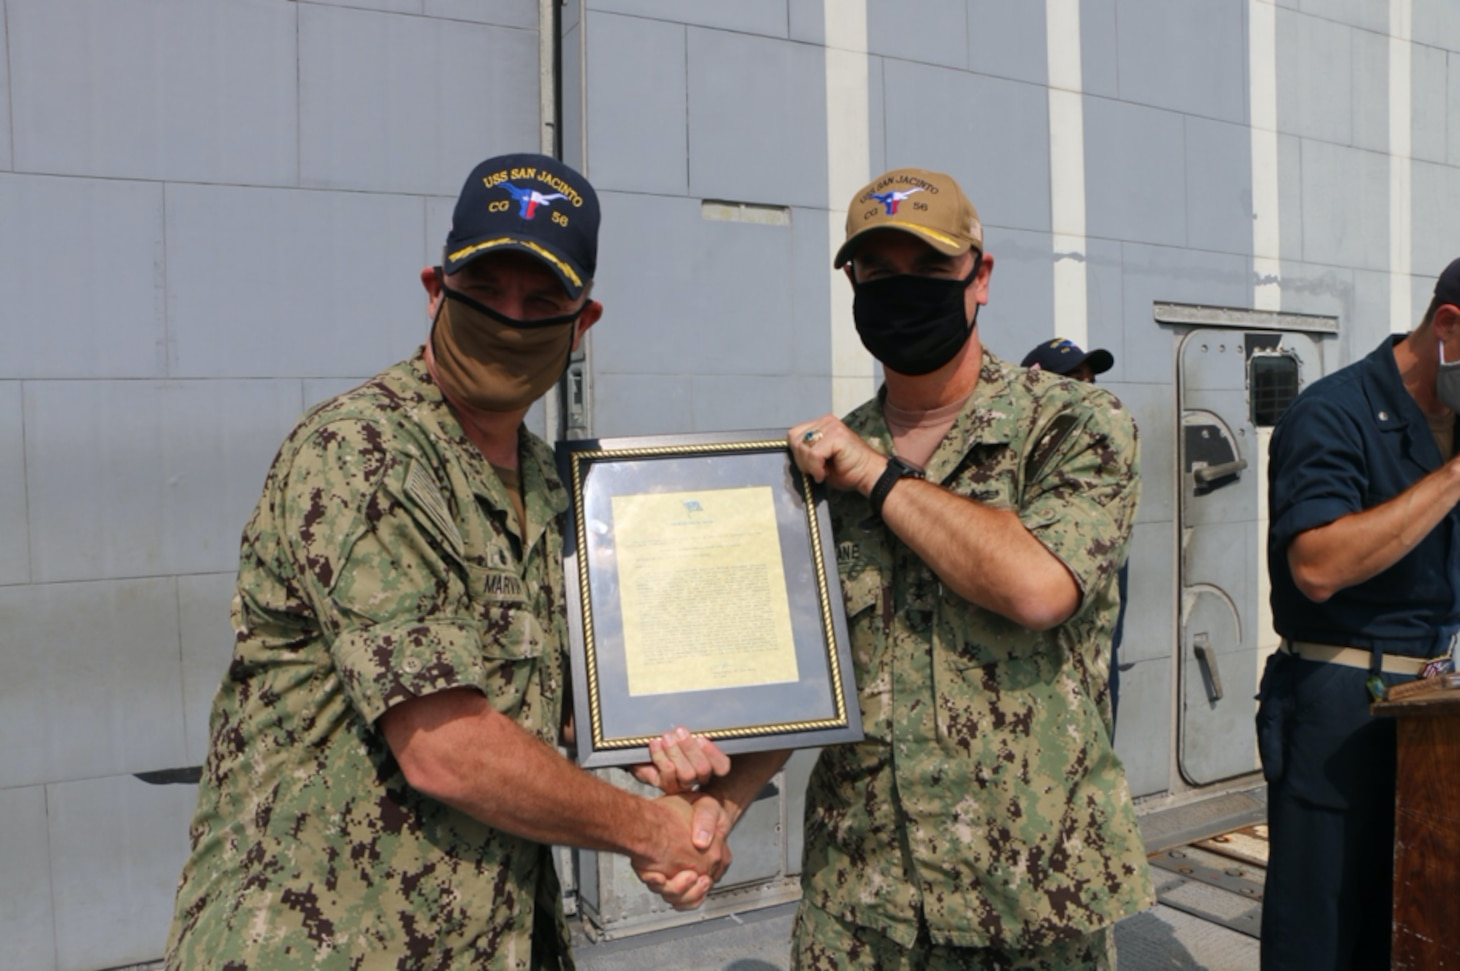 NAVAL STATION NORFOLK (Aug. 2, 2021) – Rear Adm. Brendan McLane, commander, Naval Surface Force Atlantic, presents Capt. Chris Marvin, commanding officer of the guided-missile cruiser USS San Jacinto (CG 56), with the Navy Unit Commendation. The crew of San Jacinto was awarded for their leadership and hard work in support of the Dwight D. Eisenhower Carrier Strike Group during their 2020 deployment, which lasted 206 days with no port visits. (U.S. Navy photo by Boatswain's Mate 3rd Class Danielle Bordine/Released)